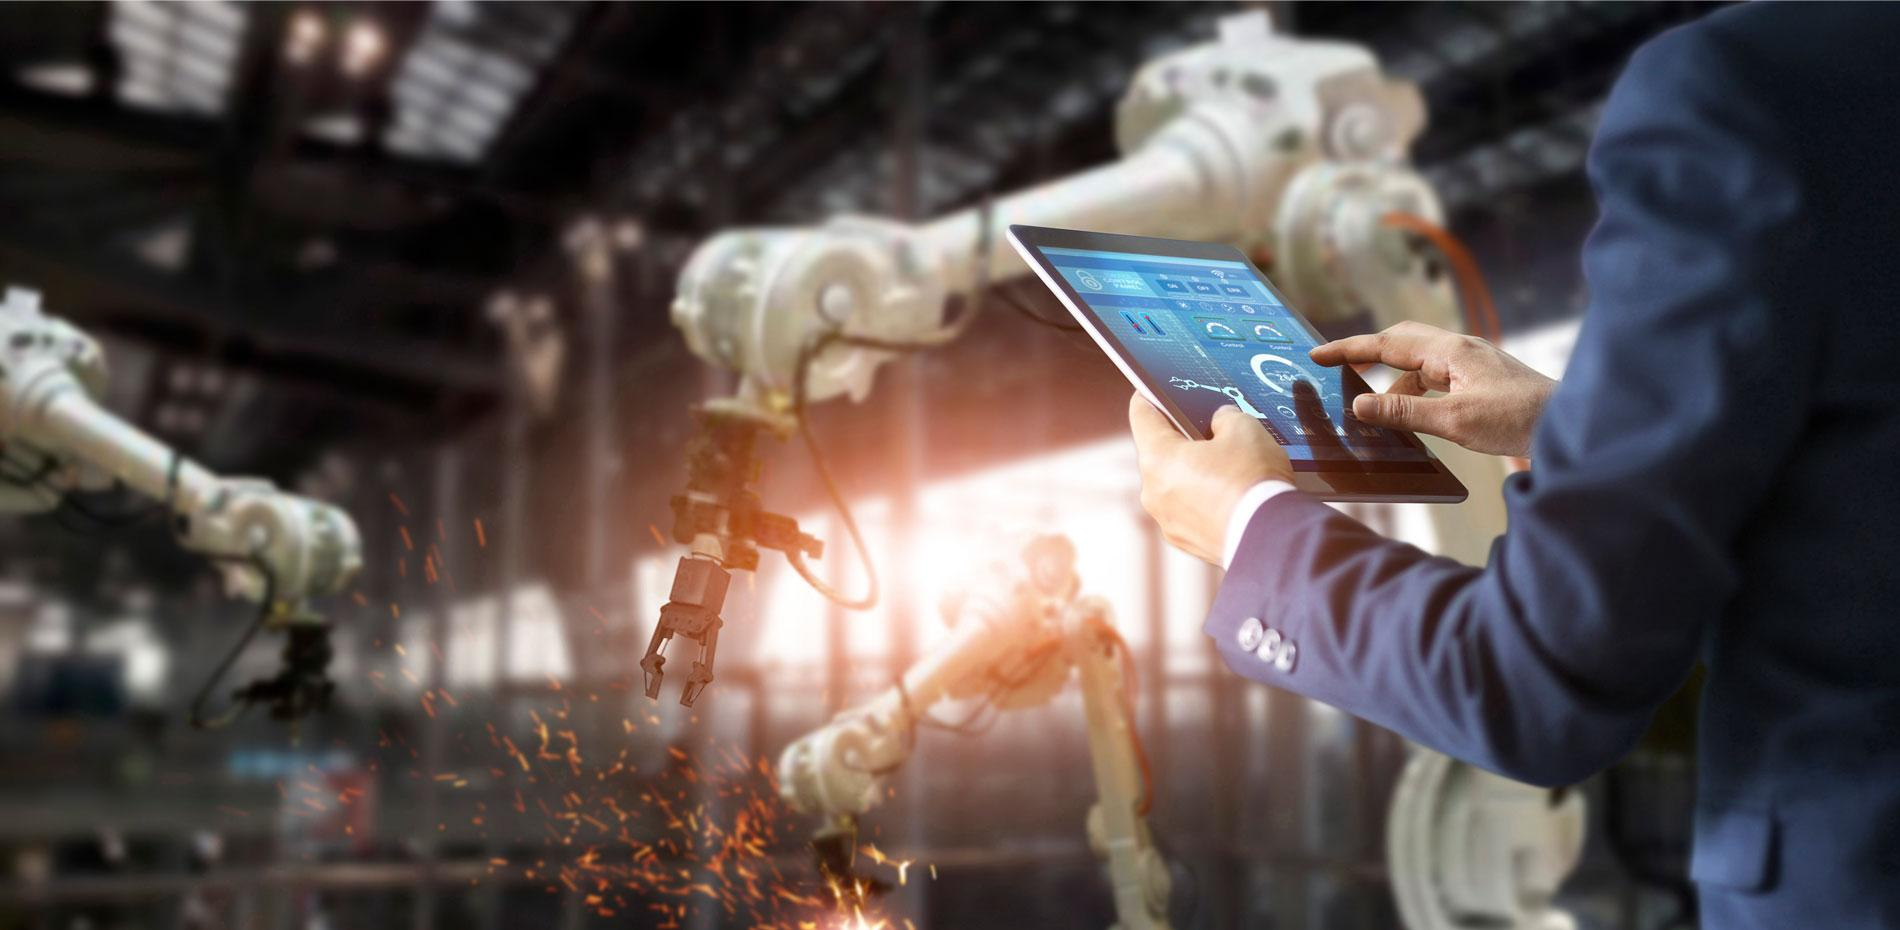 A person wearing a blue suit (only hands and forearms are visible) is controlling robots via a tablet.